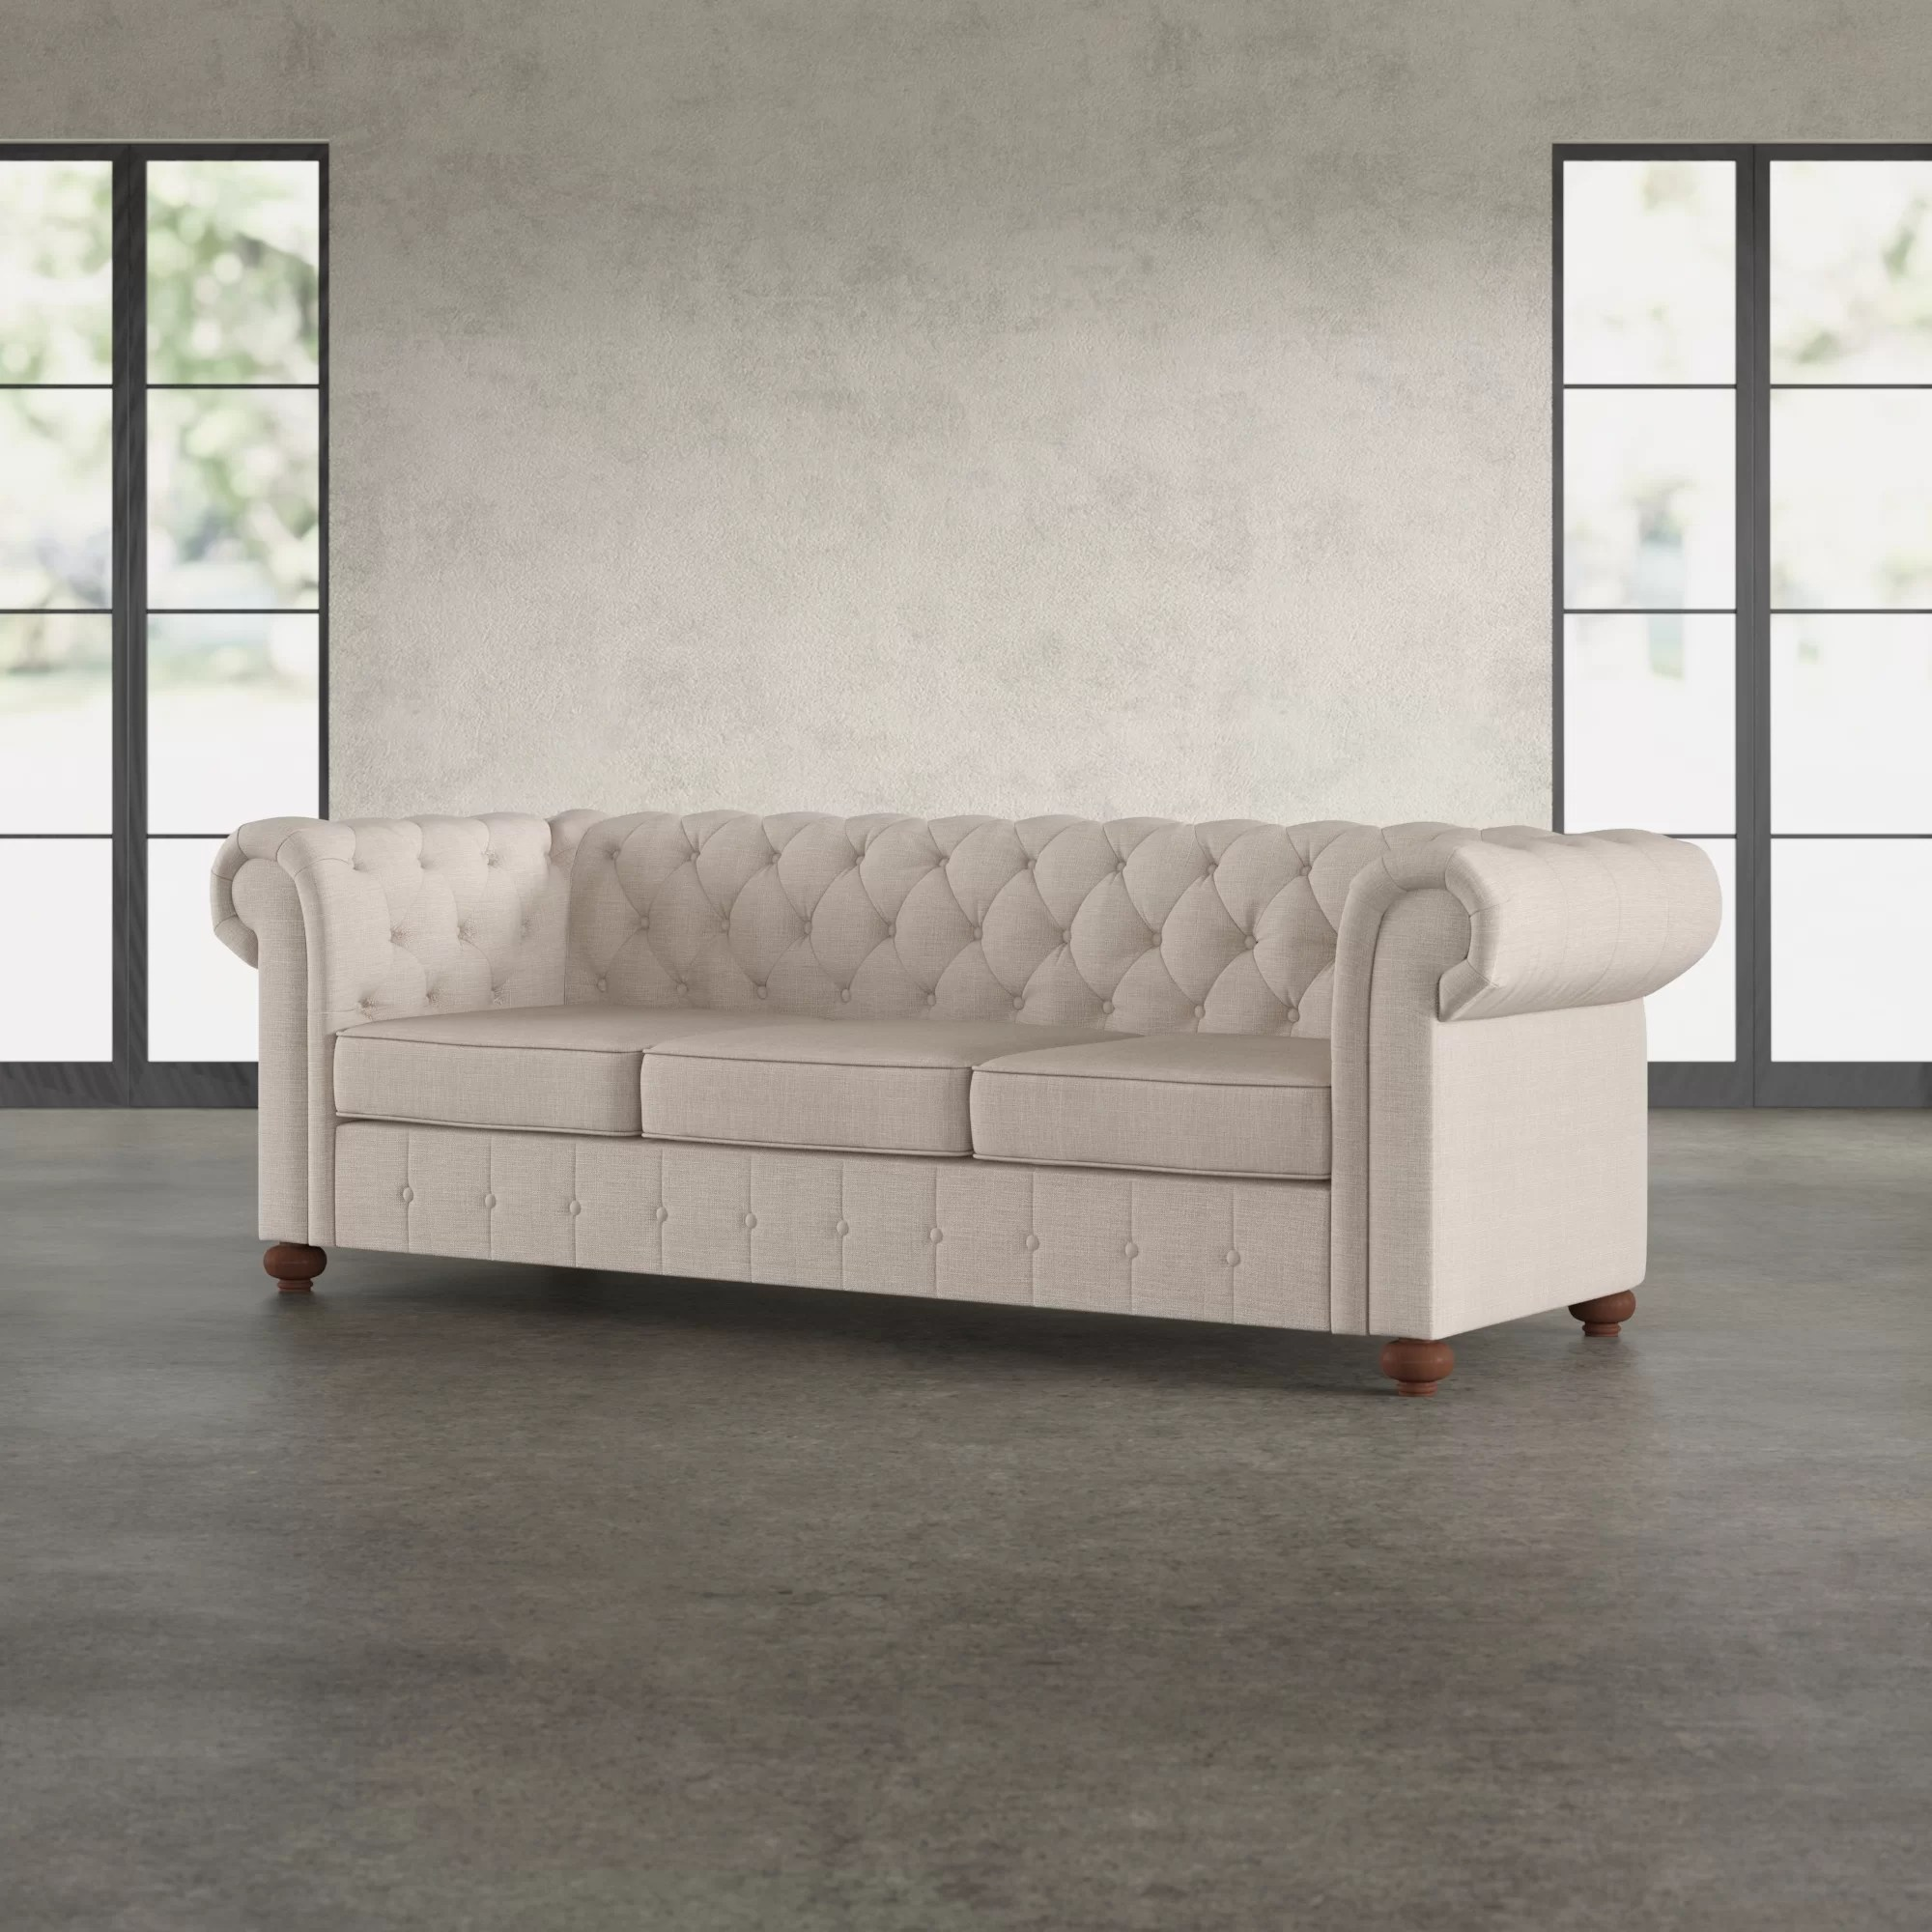 Chesterfield Sofa Quitaque Chesterfield Sofa